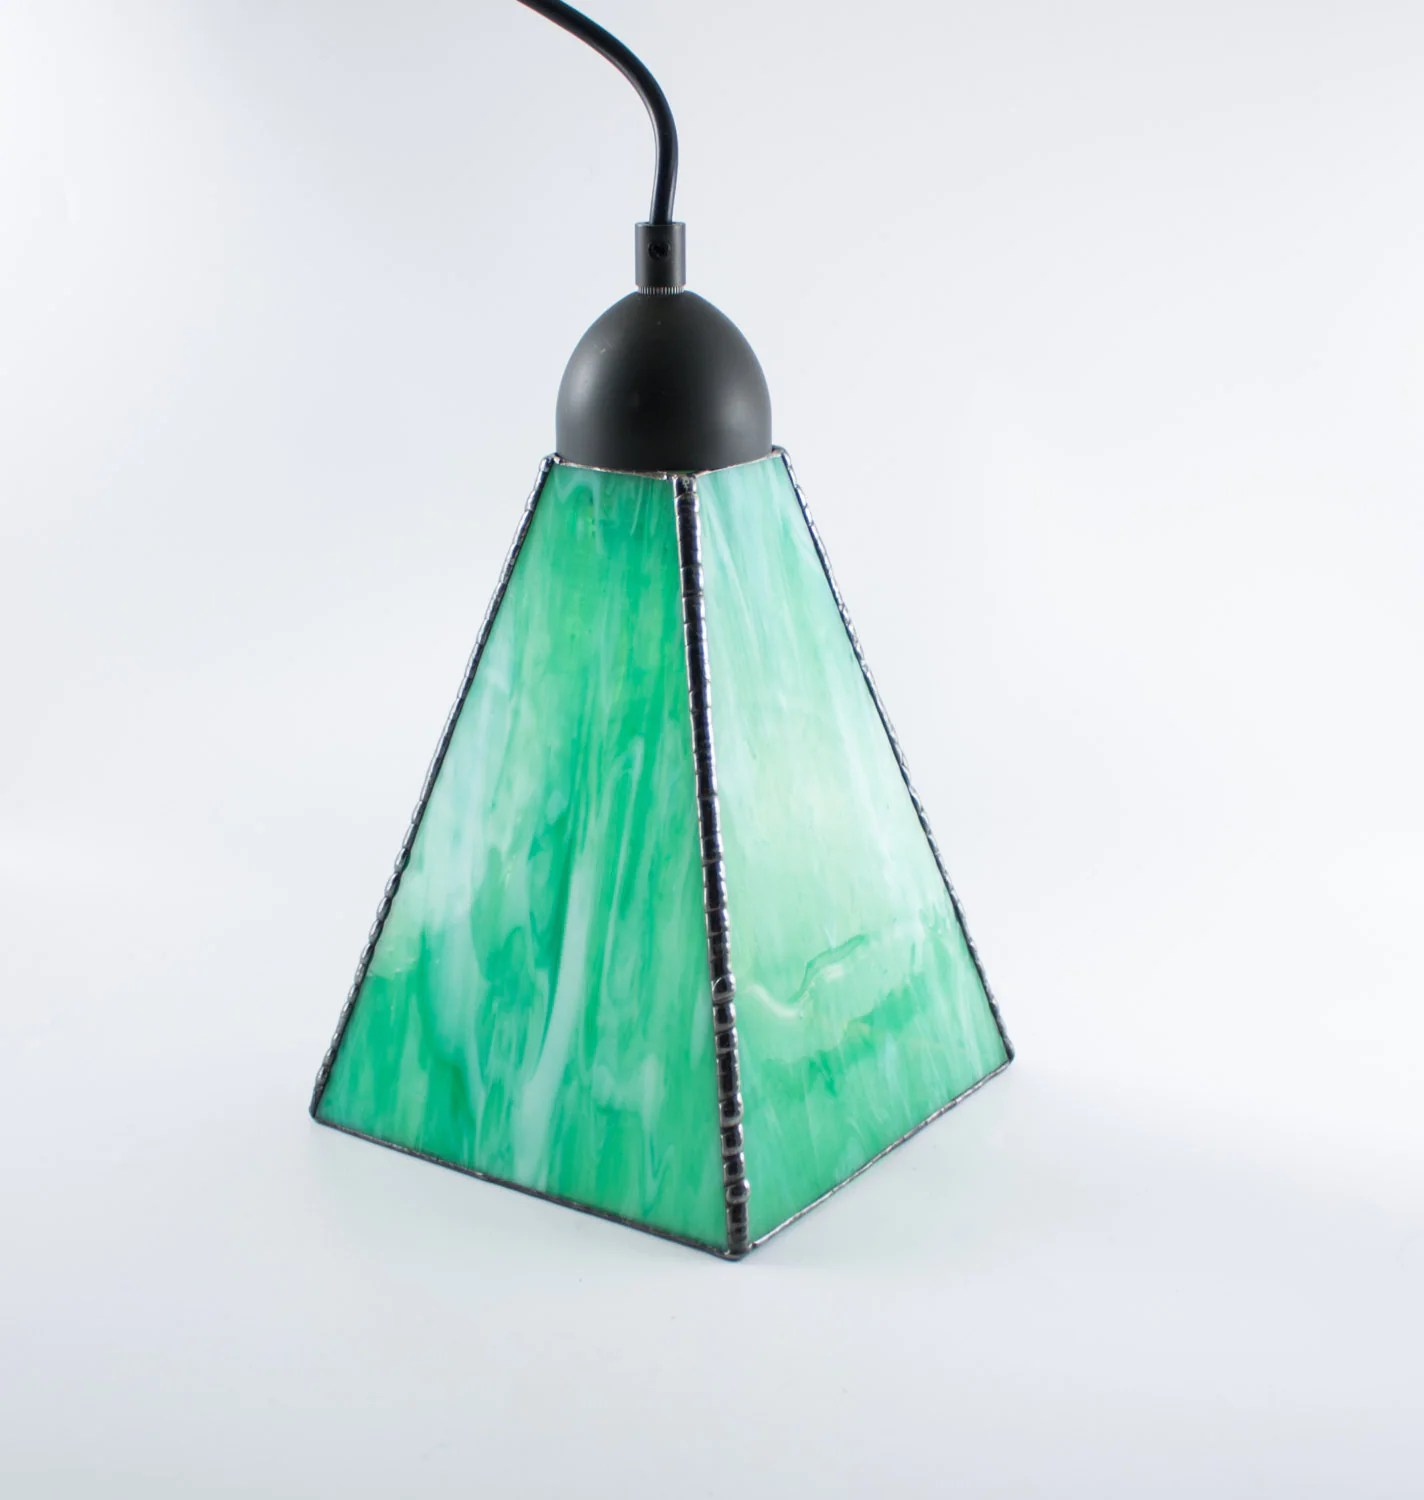 Green Glass Pendant Light Stained Glass Pendant Light Green And White Hanging Lamp